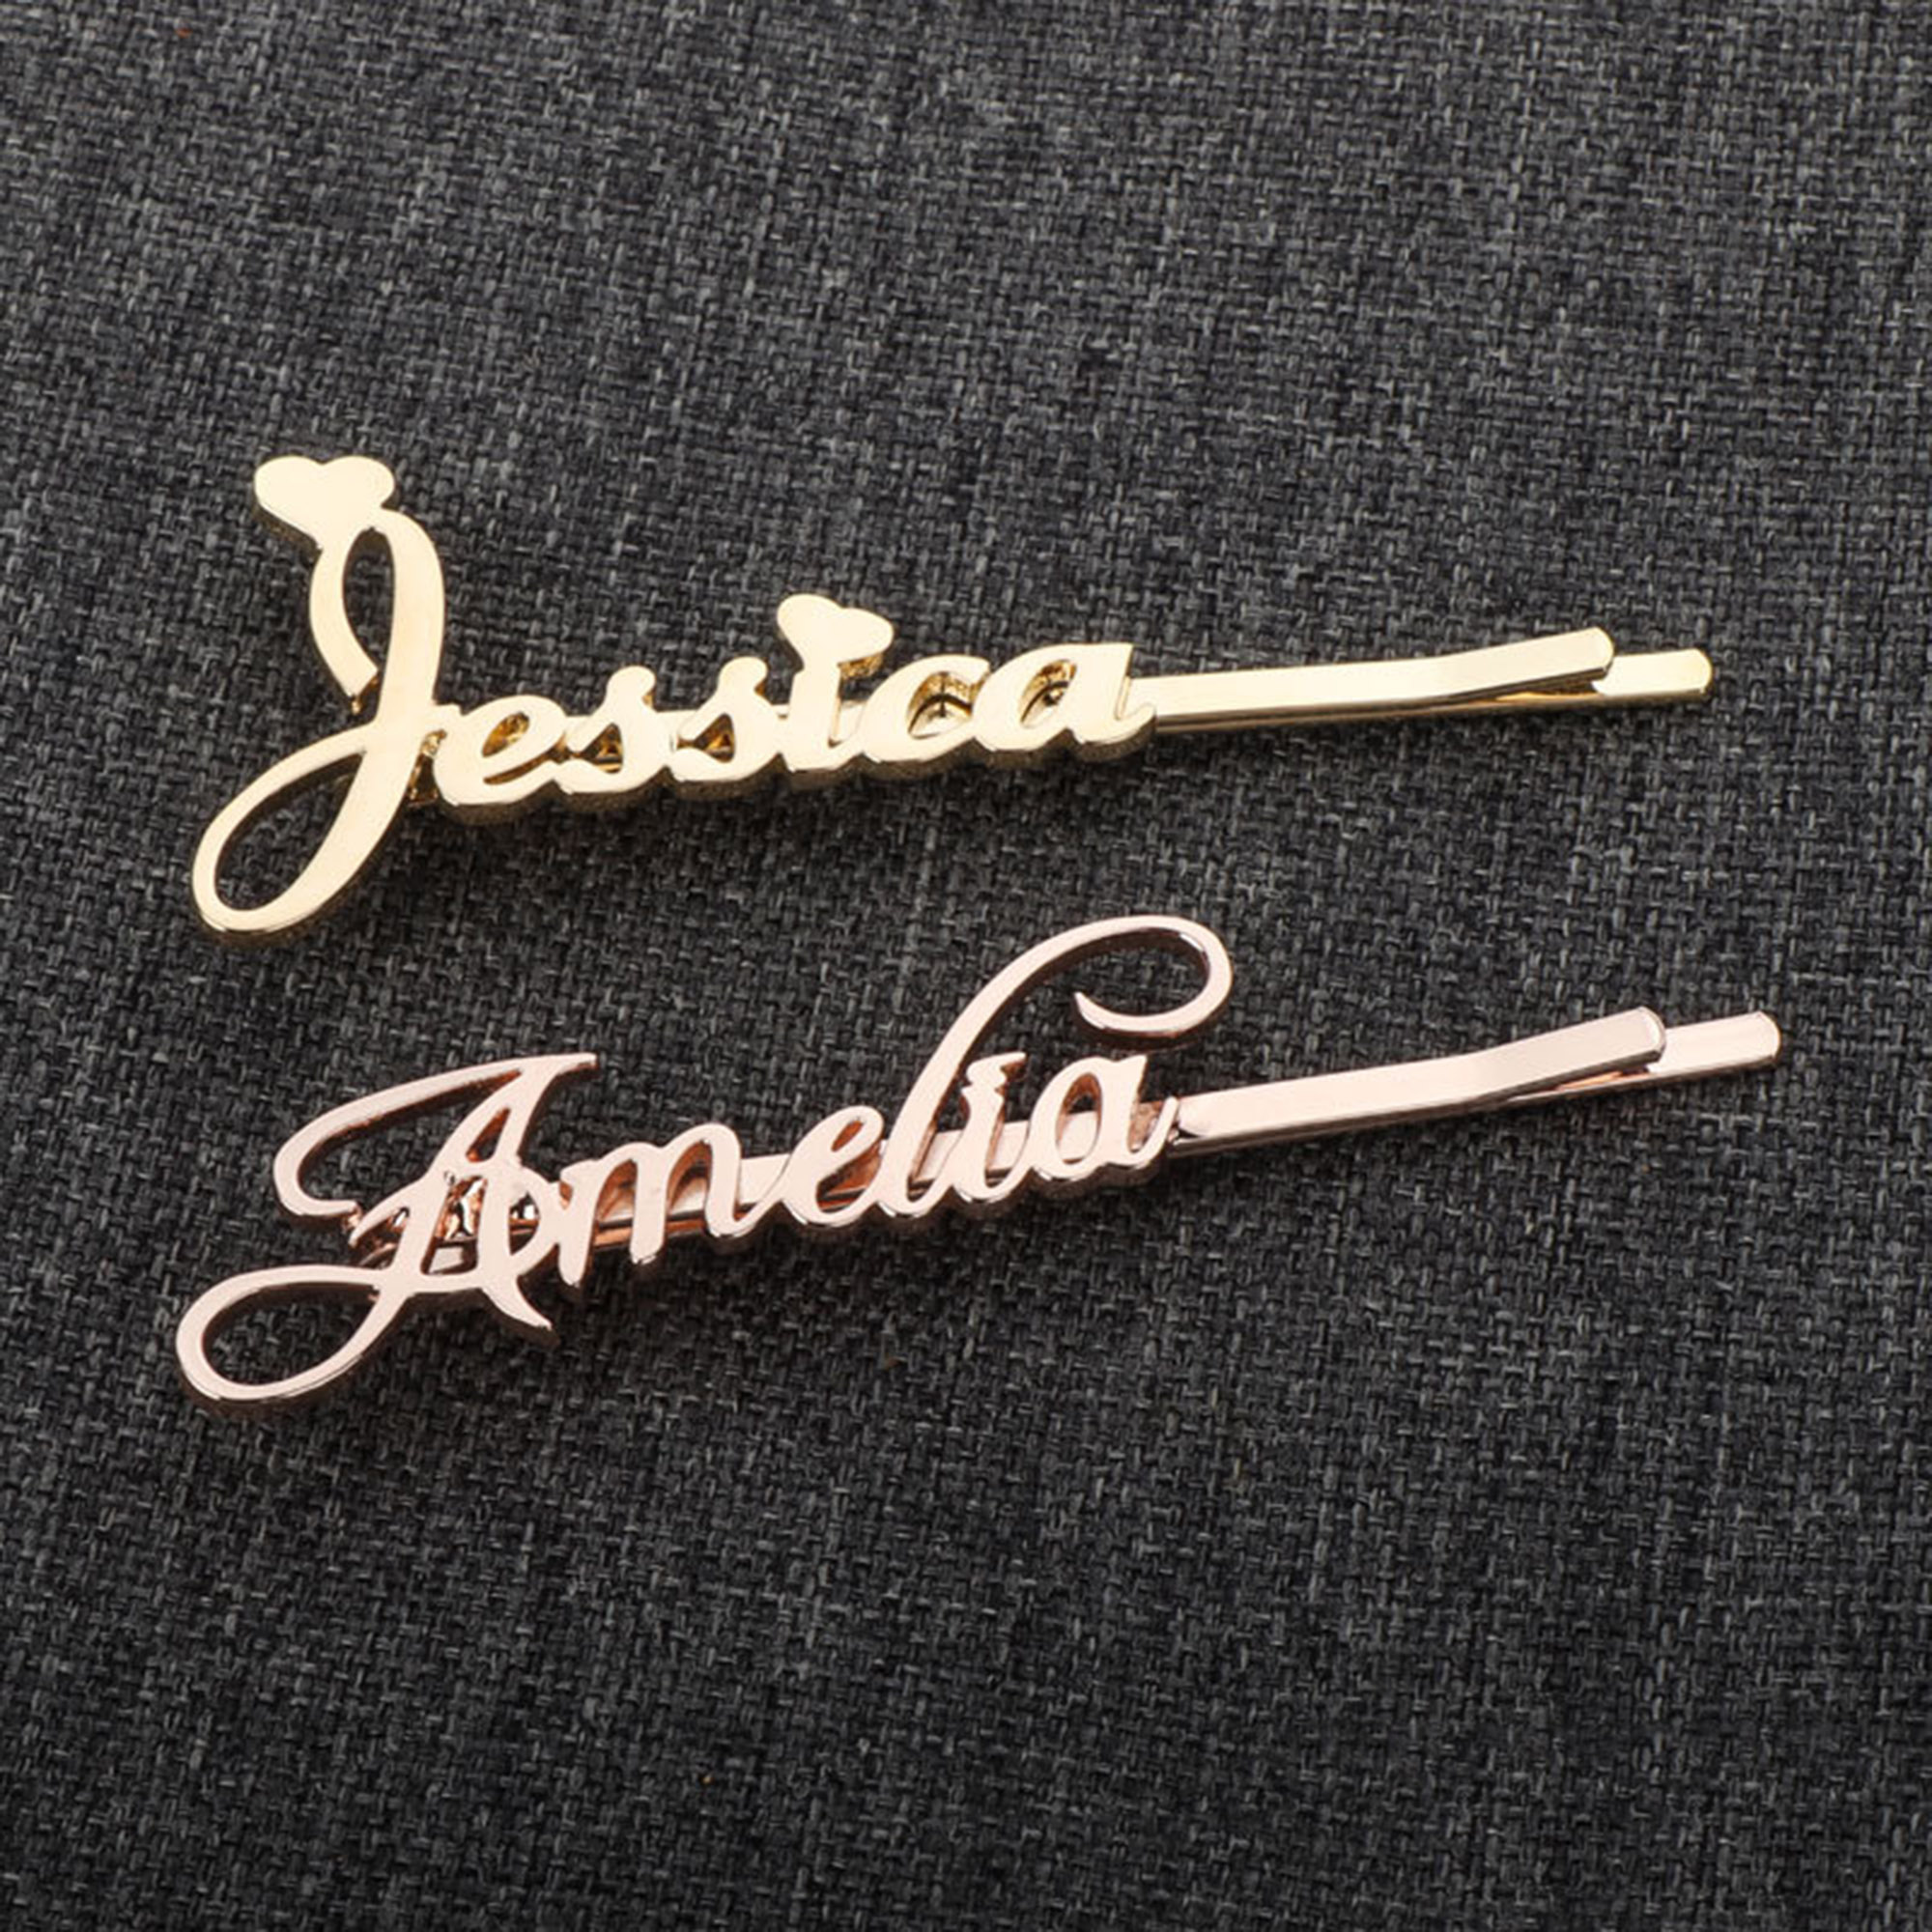 Personalized Women Barrettes Jewelry Custom Letter Name Fashion Hairpin Creative Stainless Steel Rose Gold Silver Hair Clip Gift